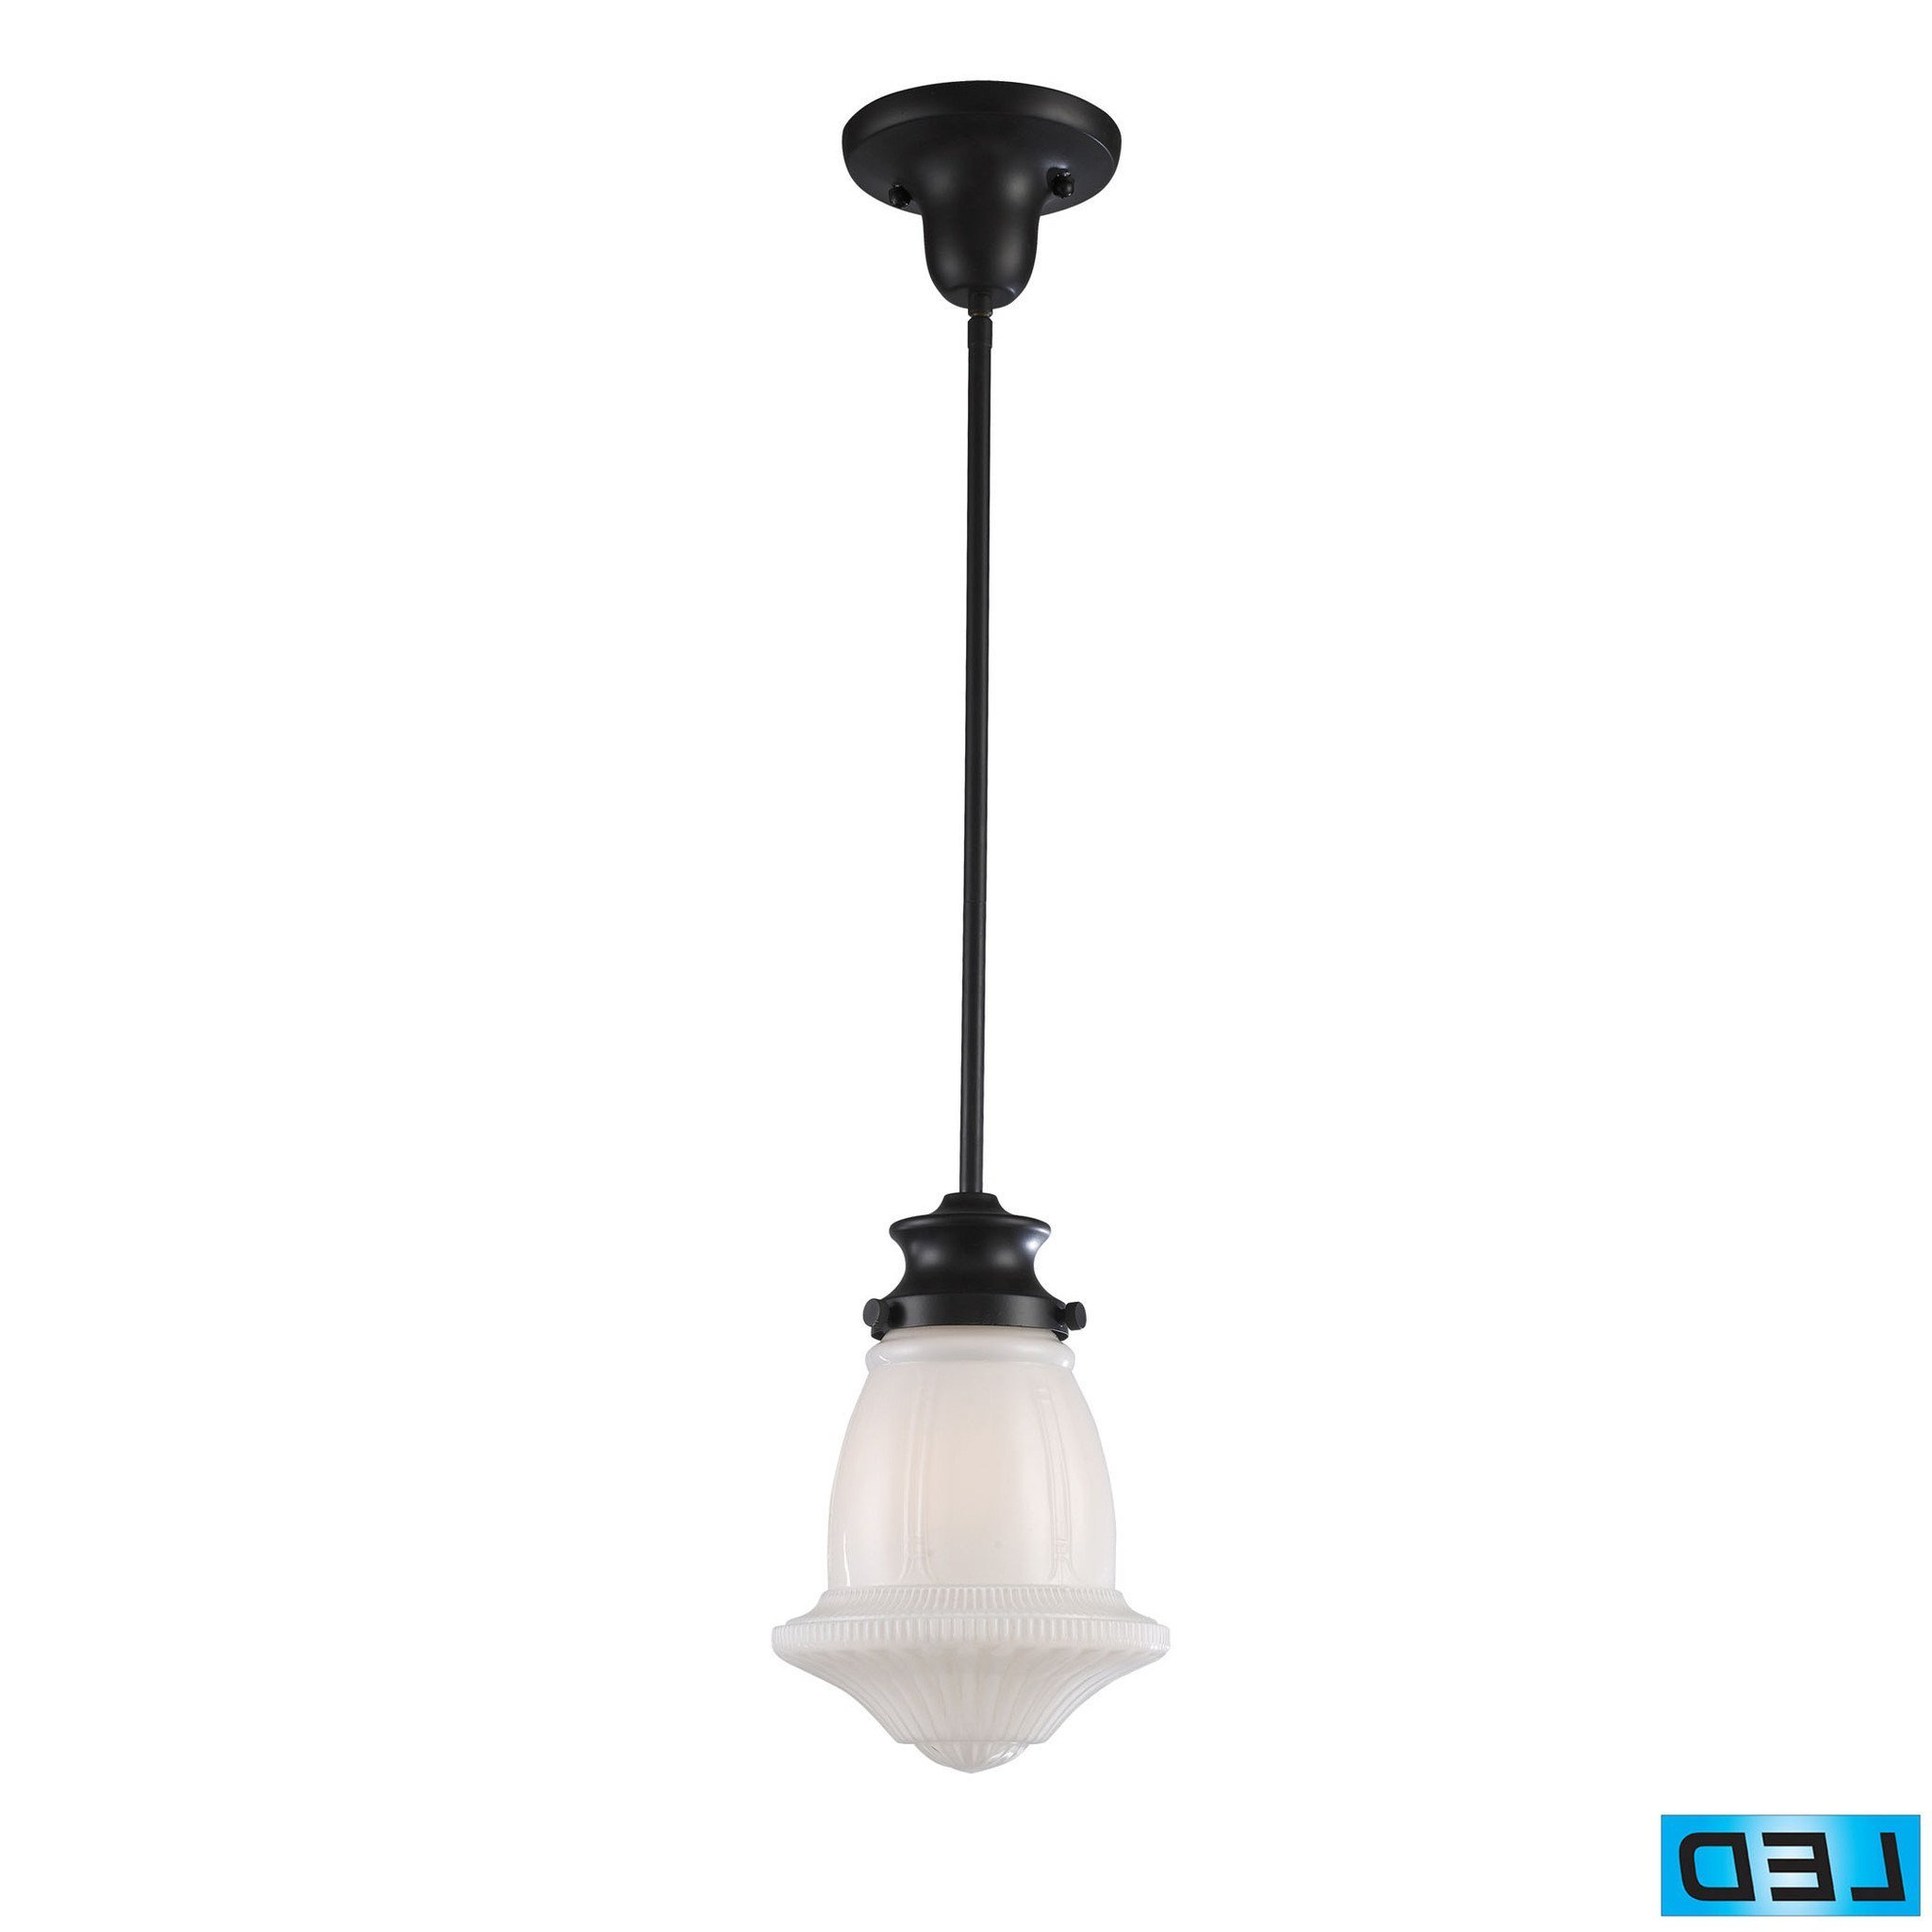 Nadine 1 Light Single Schoolhouse Pendants Throughout Fashionable Elk Lighting 69039 1 Led Schoolhouse Pendants Collection (Gallery 19 of 20)